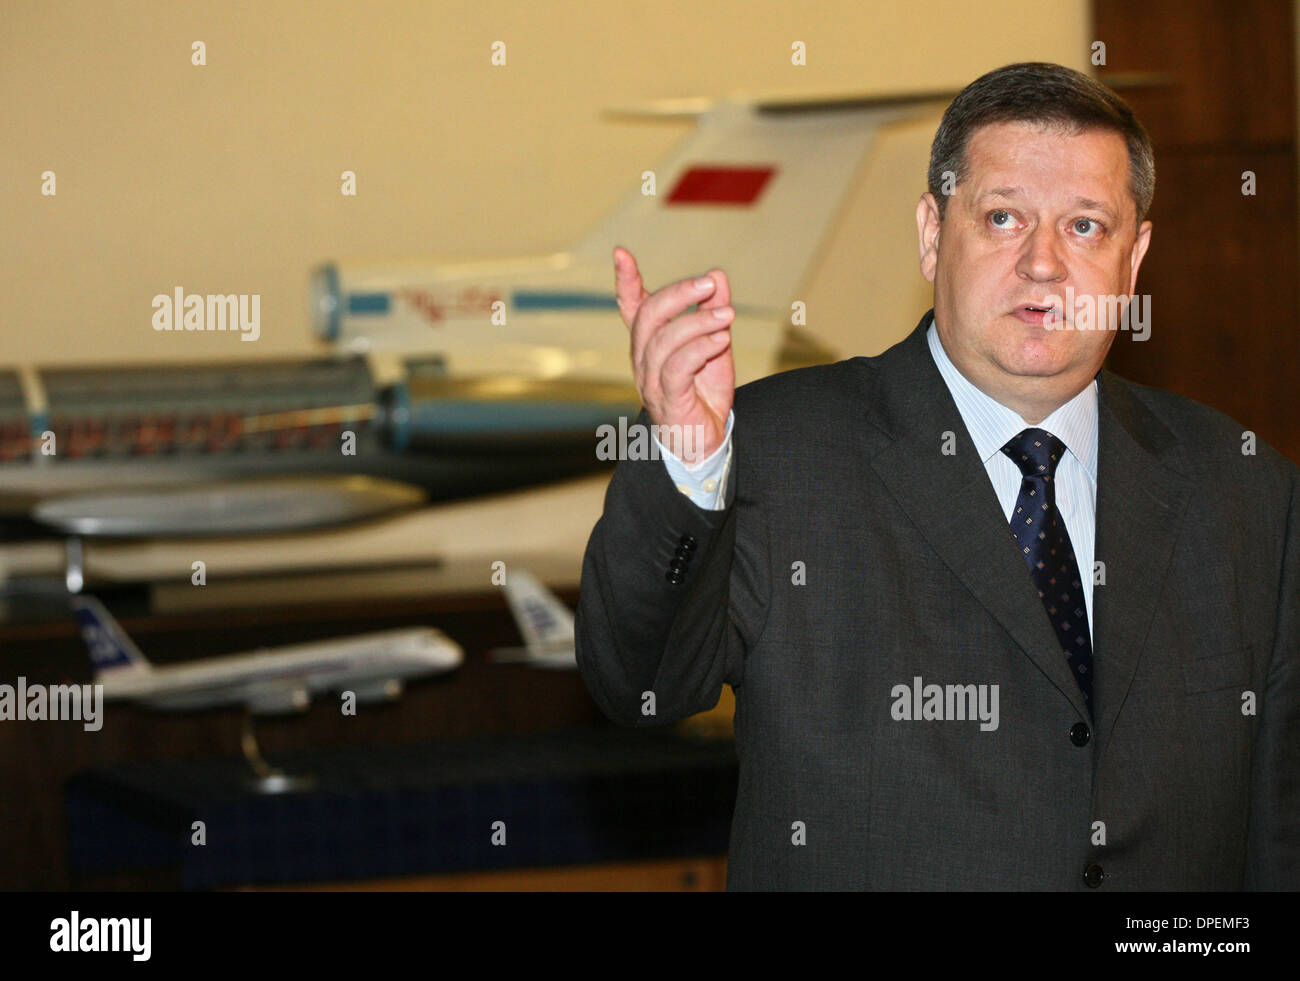 Jun 06, 2006 - Moscow, Russia - Tupolev, the Russian aerospace and defence company, founded in 1922. The Russian - Stock Image